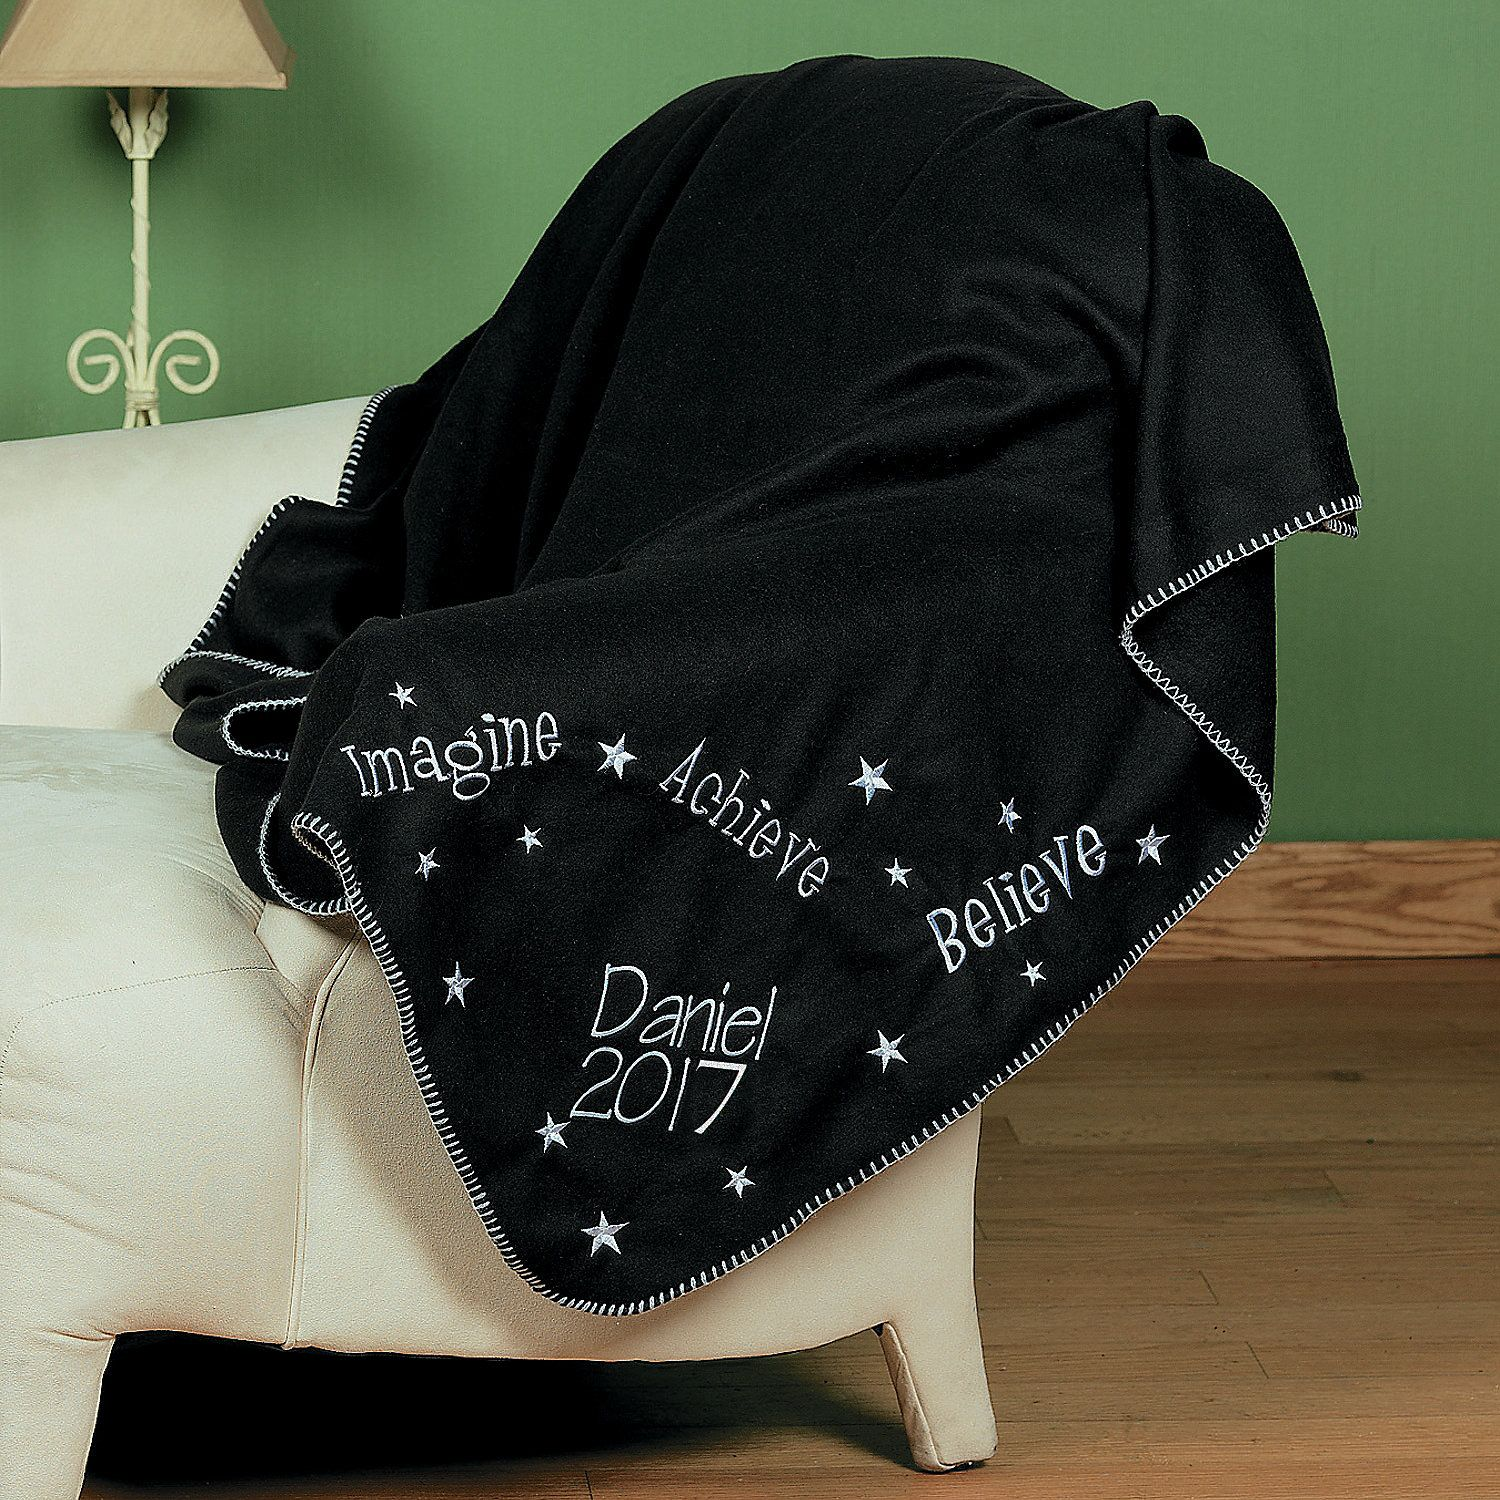 Personalized+Embroidered+Graduation+Throw+-+OrientalTrading.com